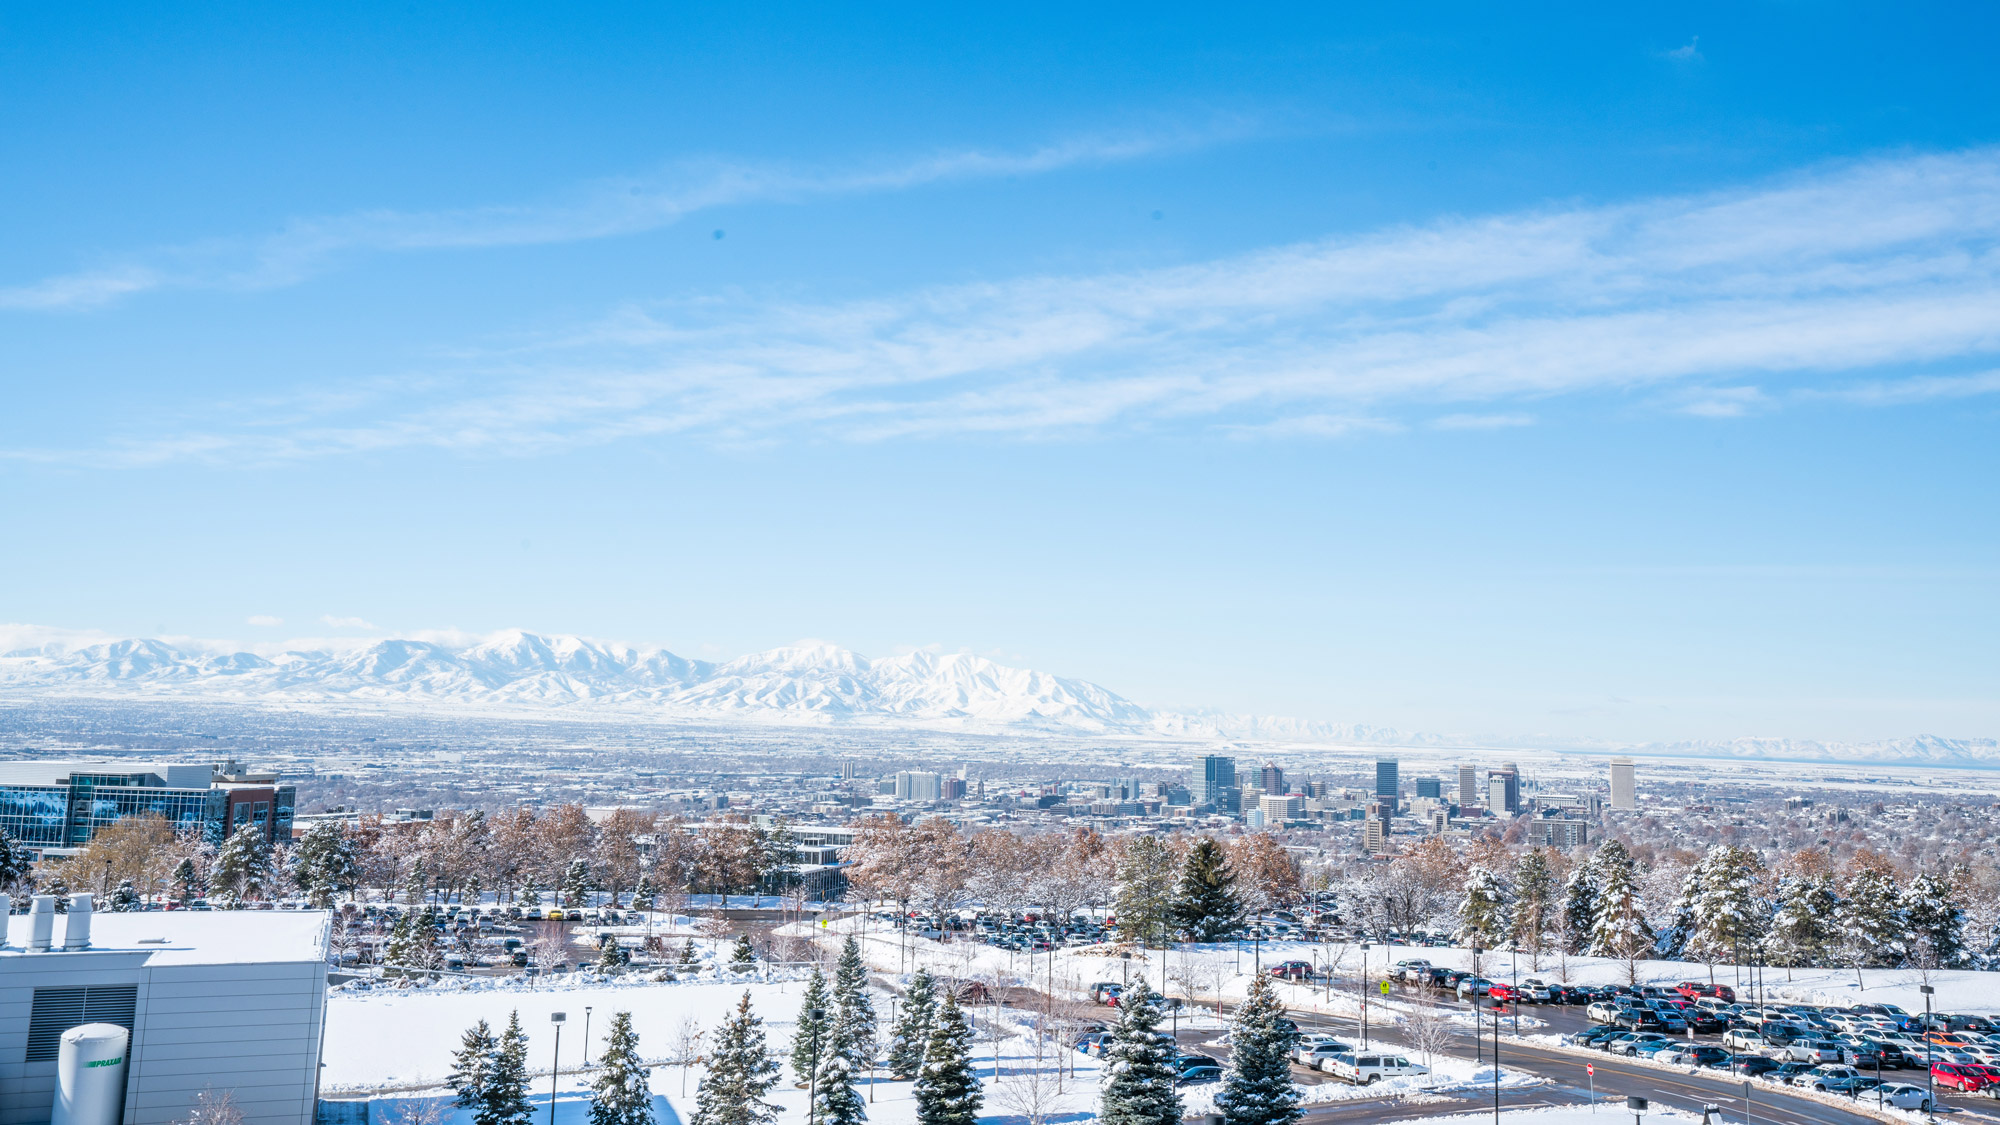 looking west at the Oquirrh Mountains over Salt Lake Valley